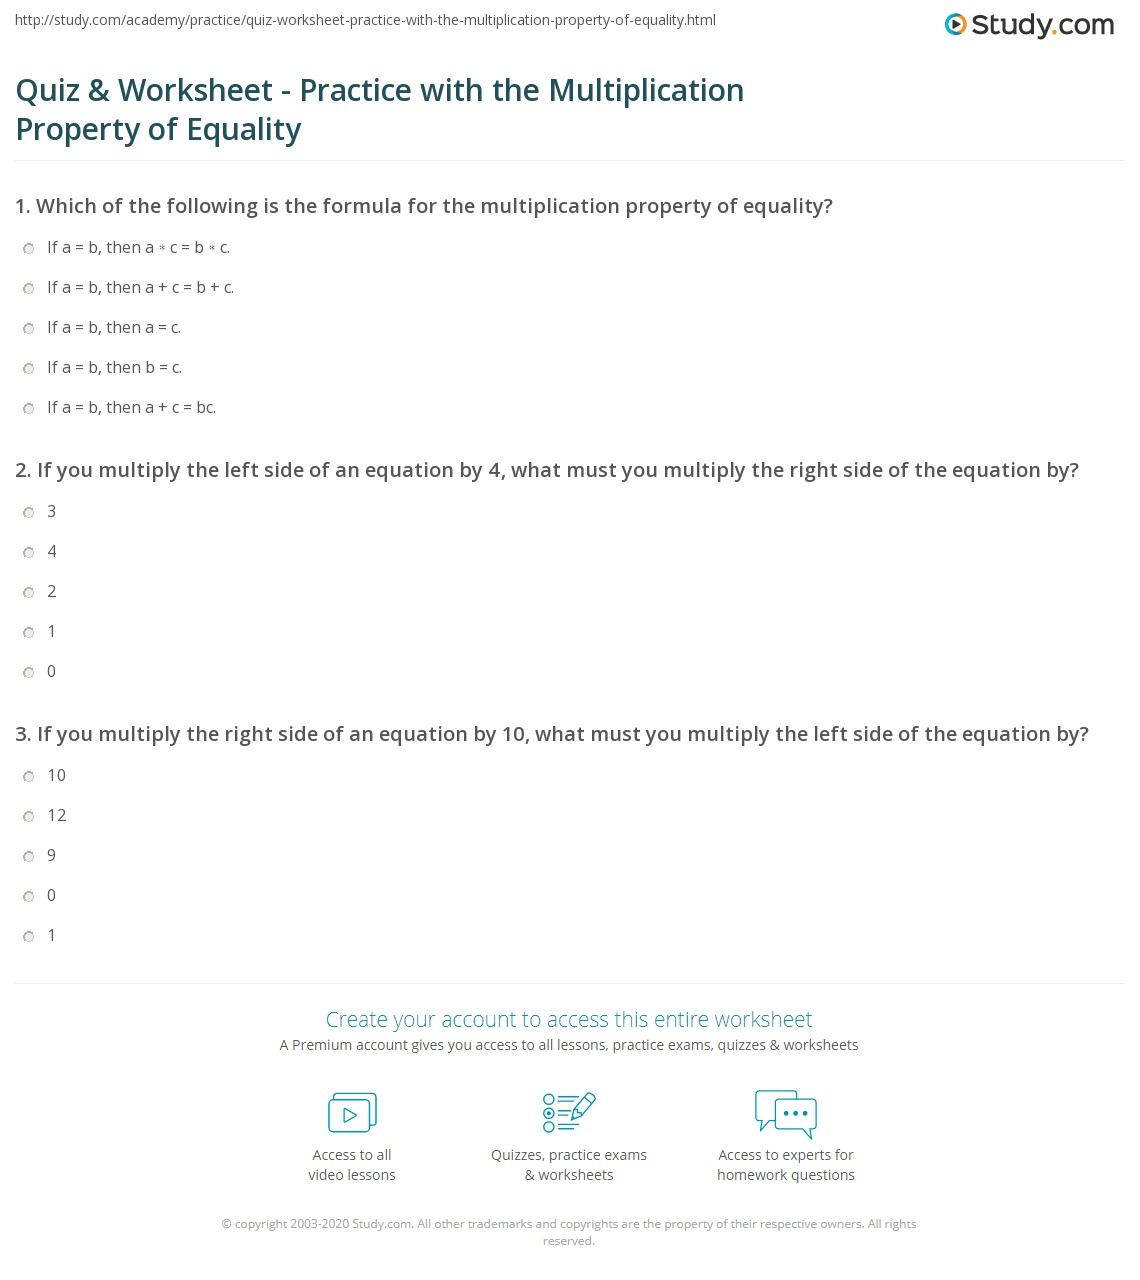 Quiz Worksheet Practice With The Multiplication Property Of